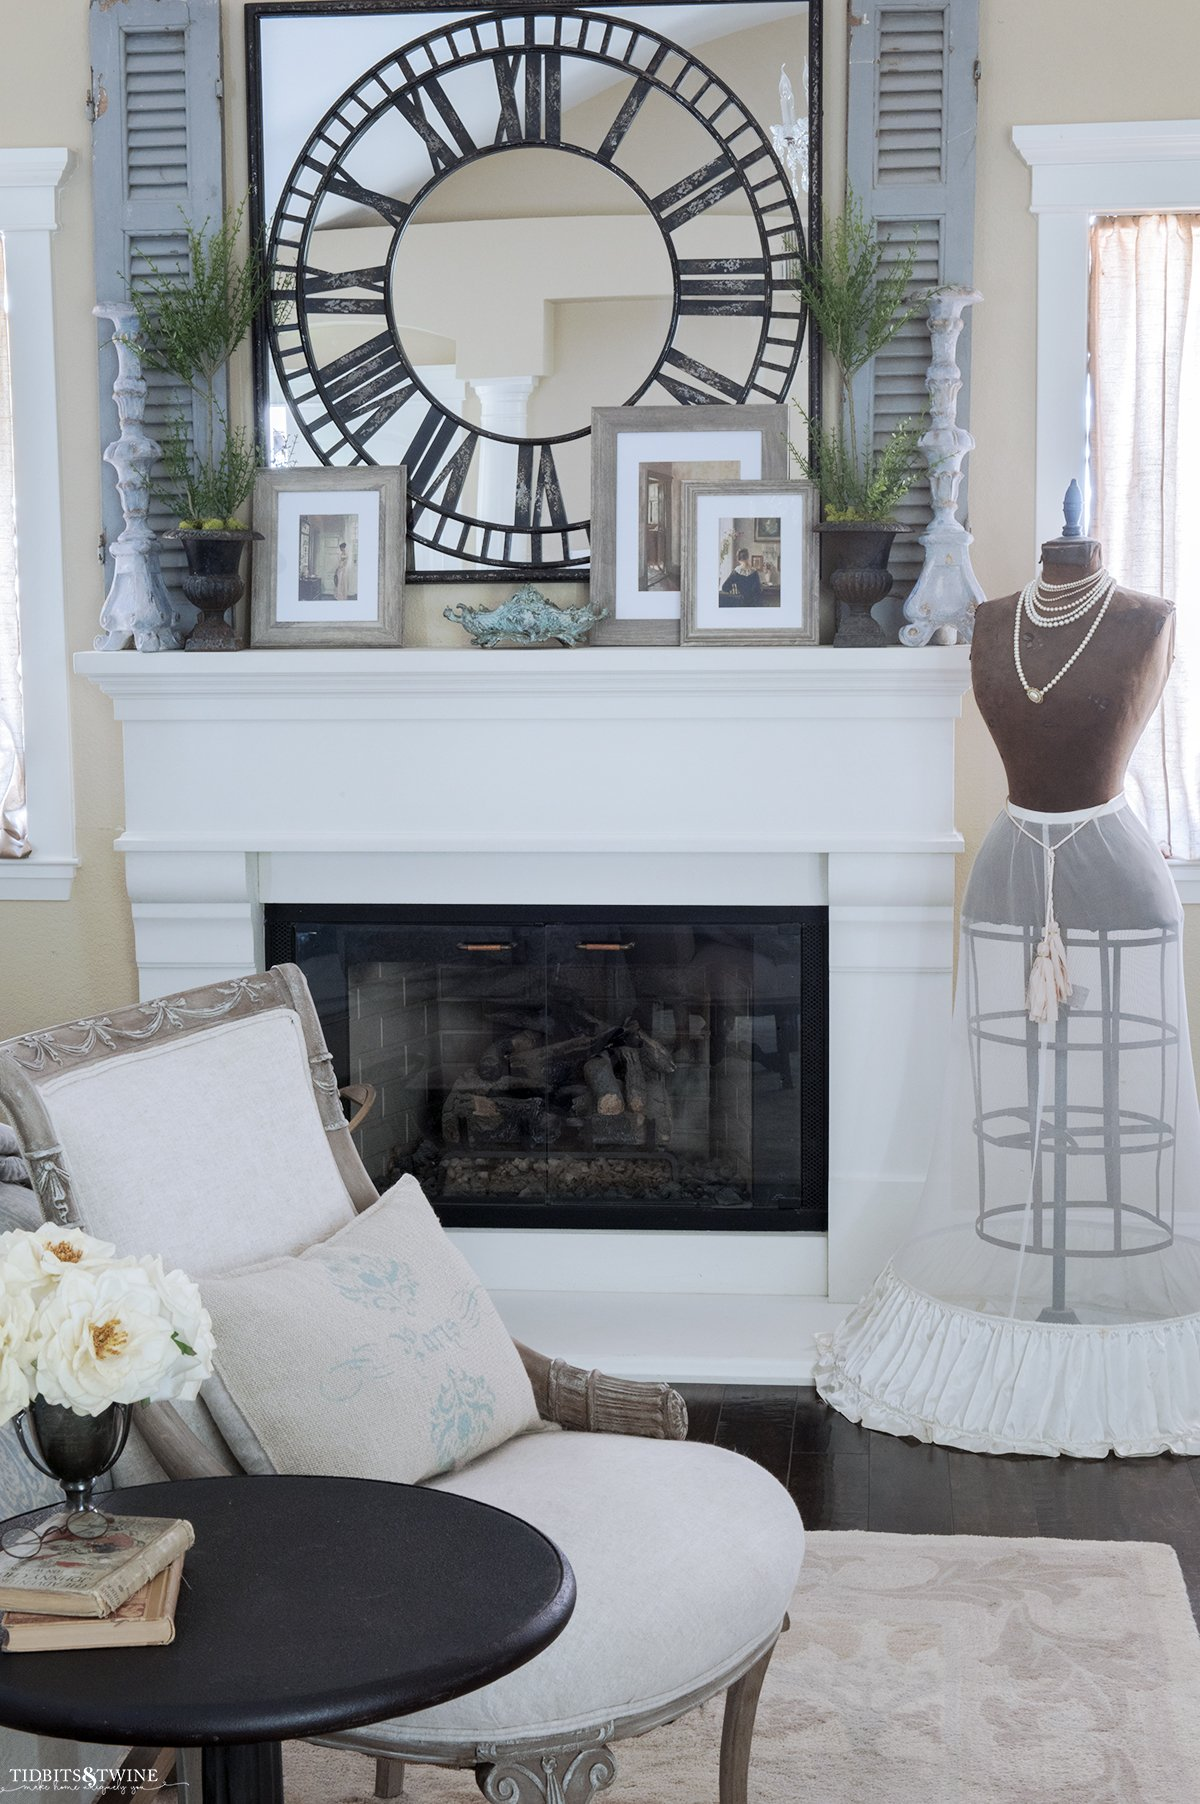 french seating area at end of bed looking toward white cast stone fireplace mantel with mirror and candlesticks above and antique dress form on side